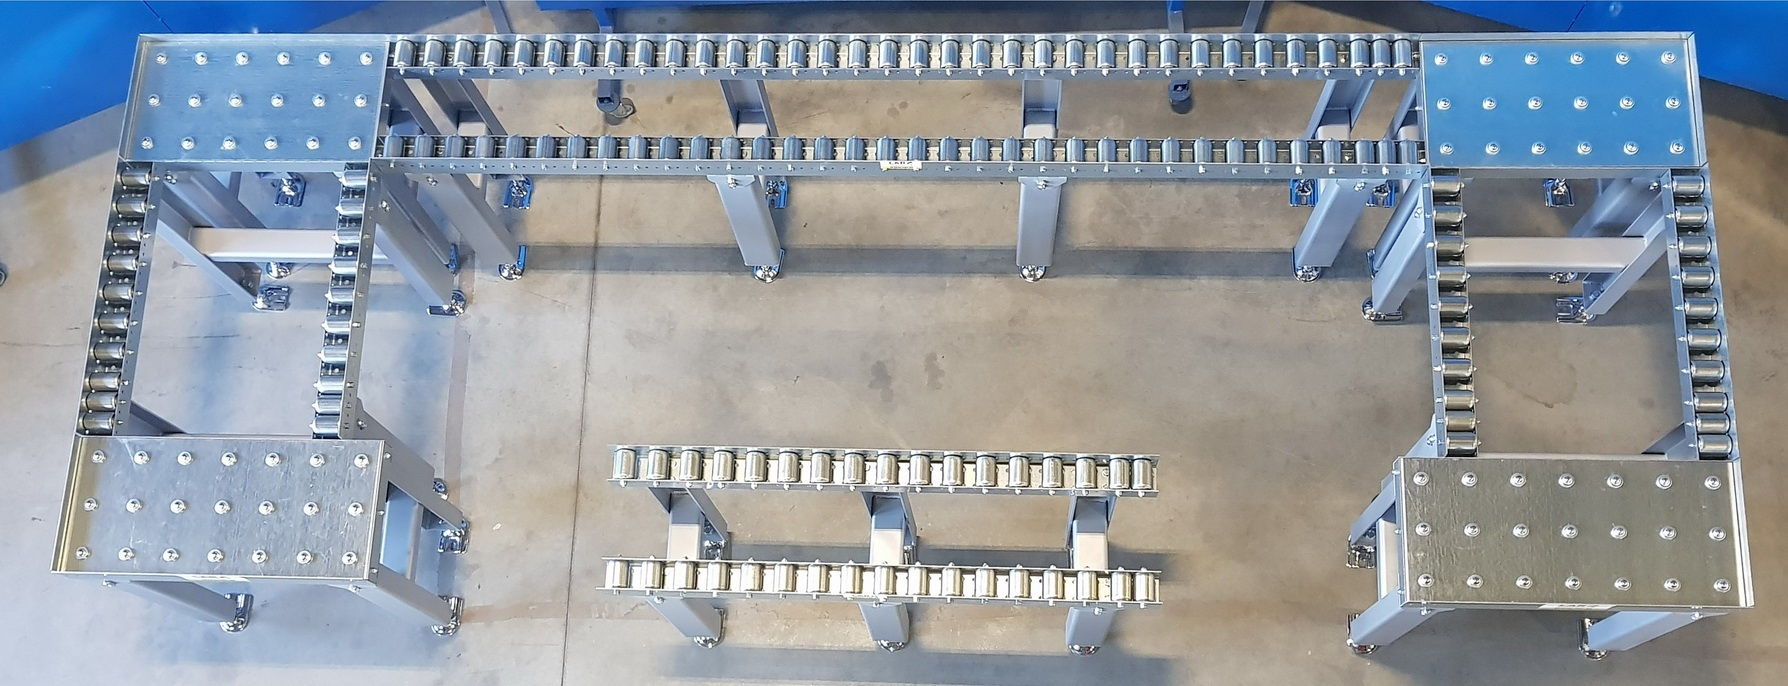 OUR OWN PRODUCTION OF CONVEYOR LINES